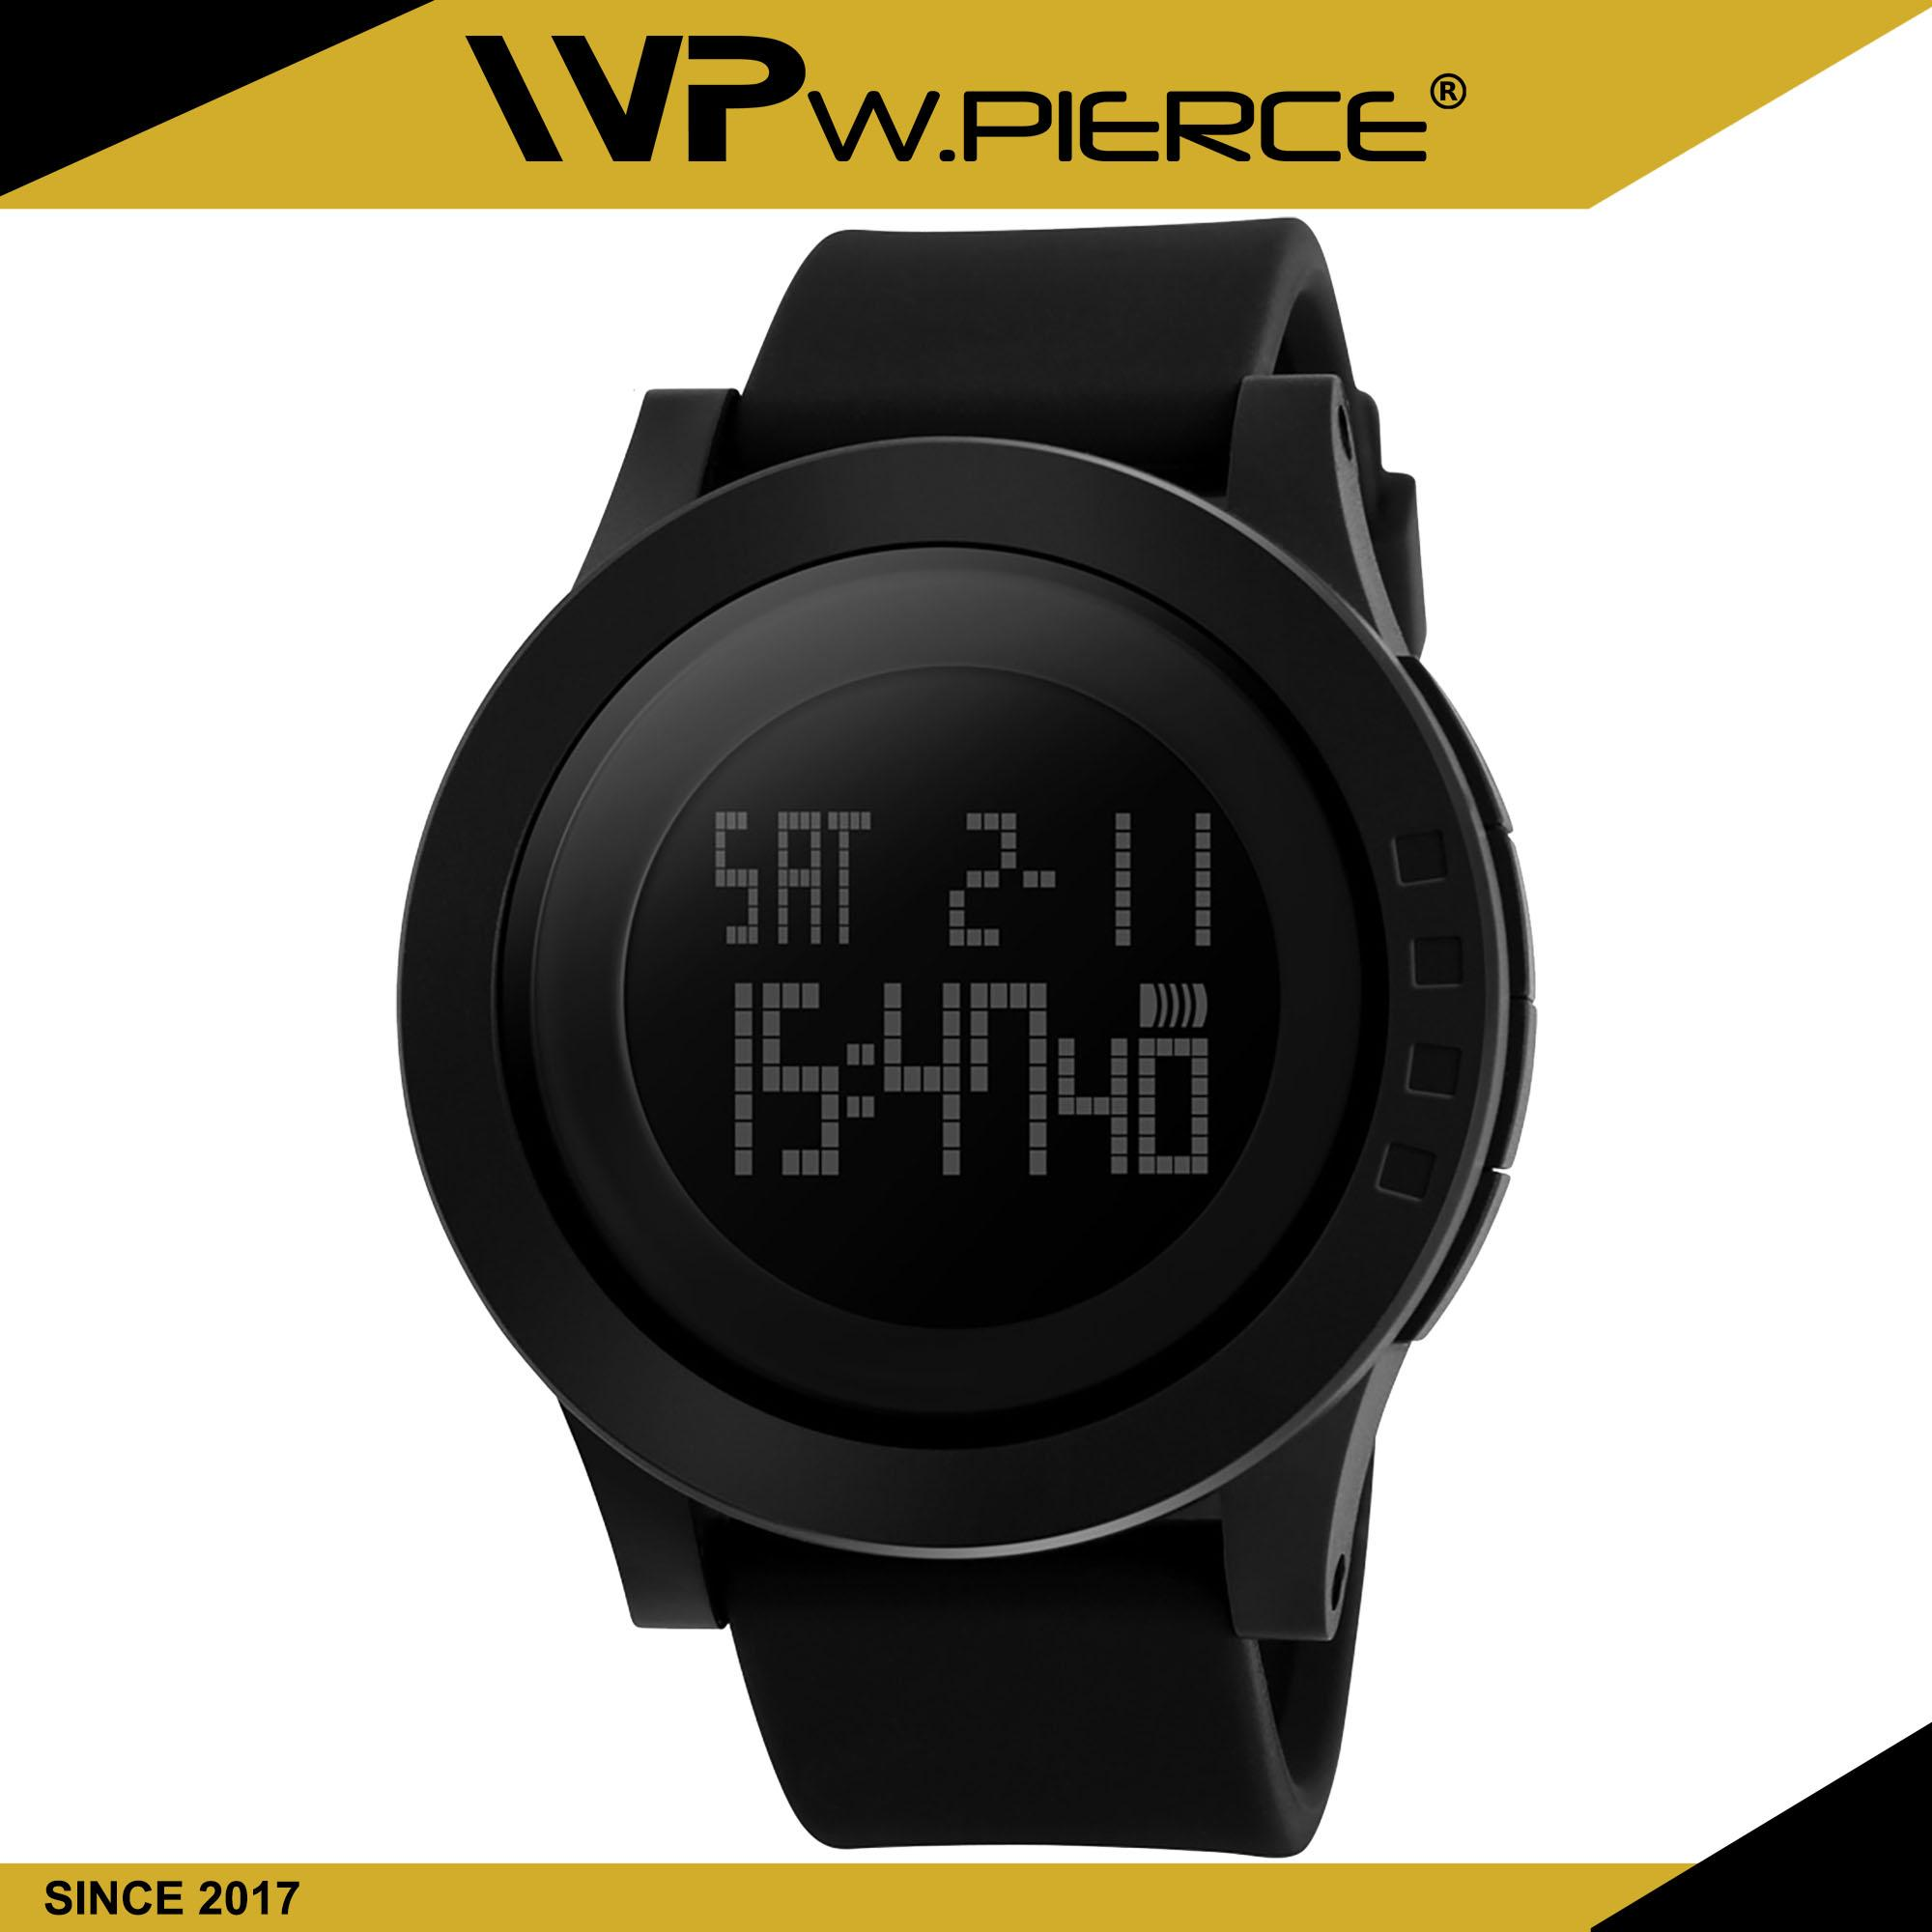 ce5b2d9a9b1d7 WPierce 1142 BLACK Watch Men Military Sports Watches Fashion Silicone  Waterproof LED Digital Watch For Men